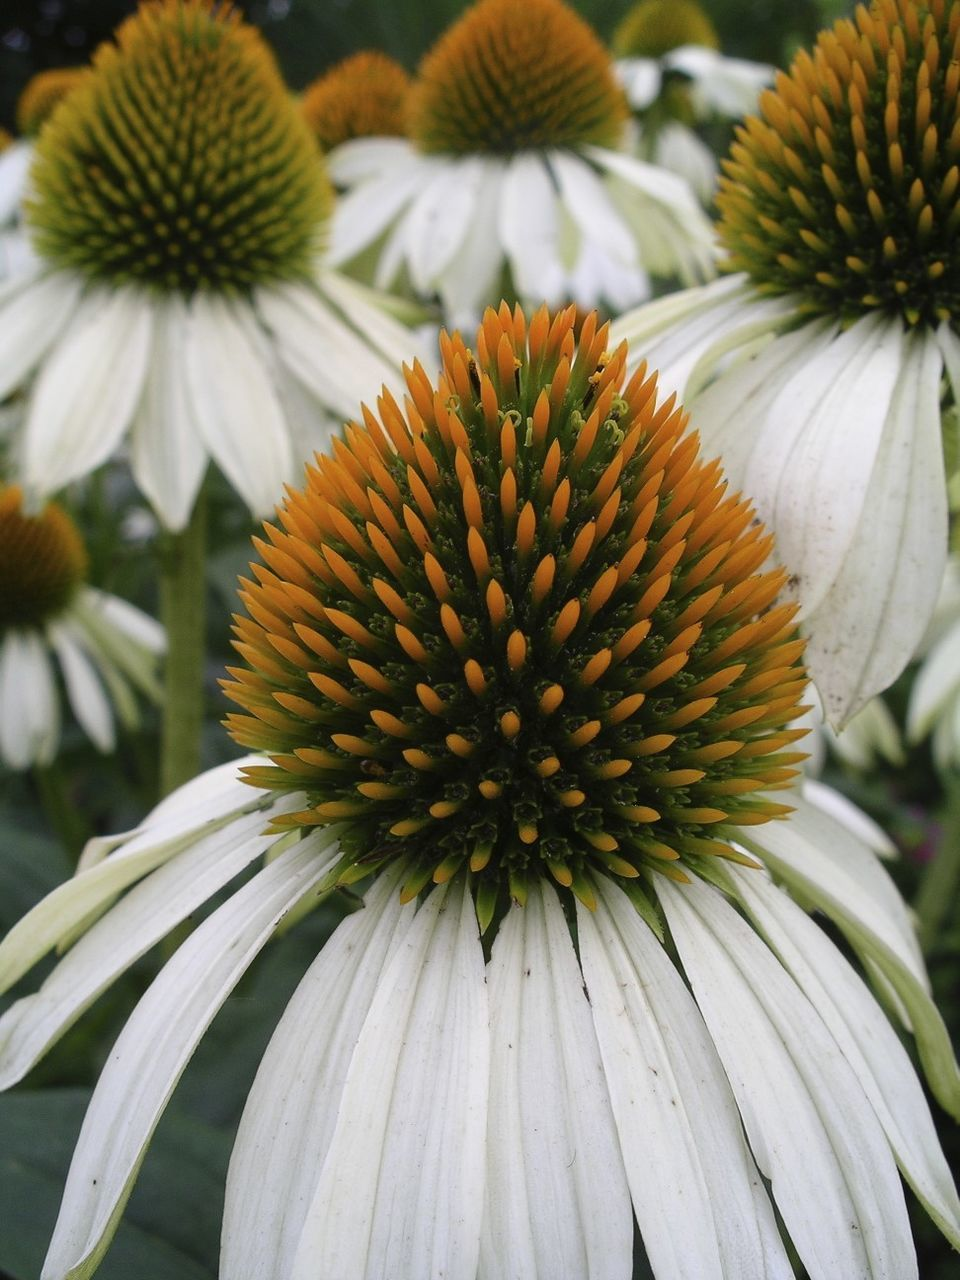 flower, coneflower, fragility, petal, flower head, nature, freshness, eastern purple coneflower, pollen, focus on foreground, growth, close-up, day, beauty in nature, blooming, no people, plant, outdoors, yellow, black-eyed susan